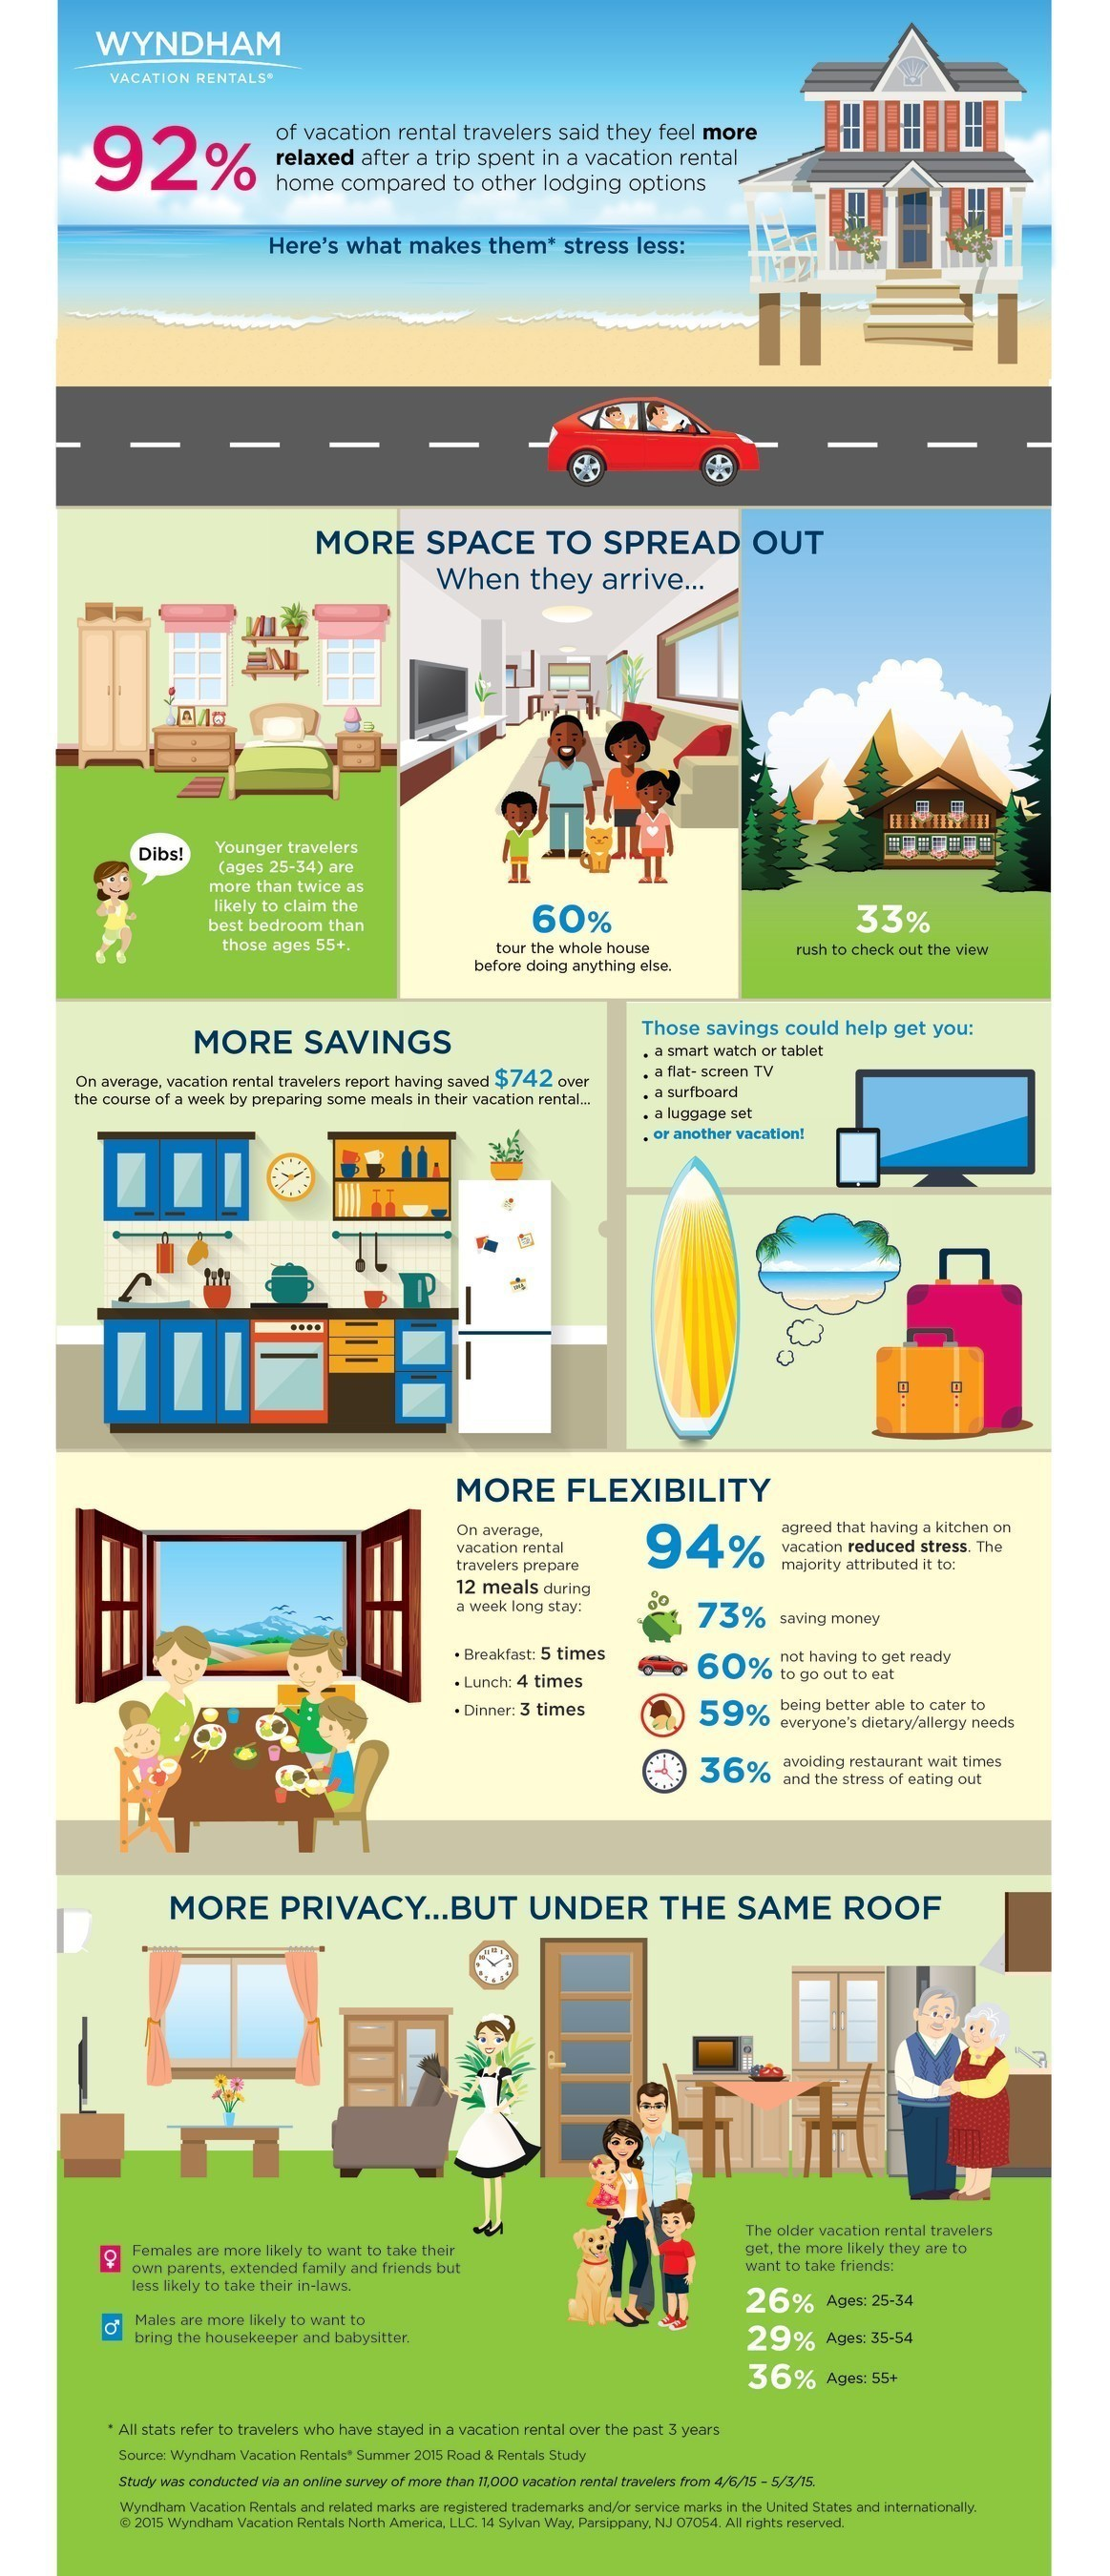 92% of vacation rental travelers said they feel more relaxed after a vacation rental stay compared to other ...